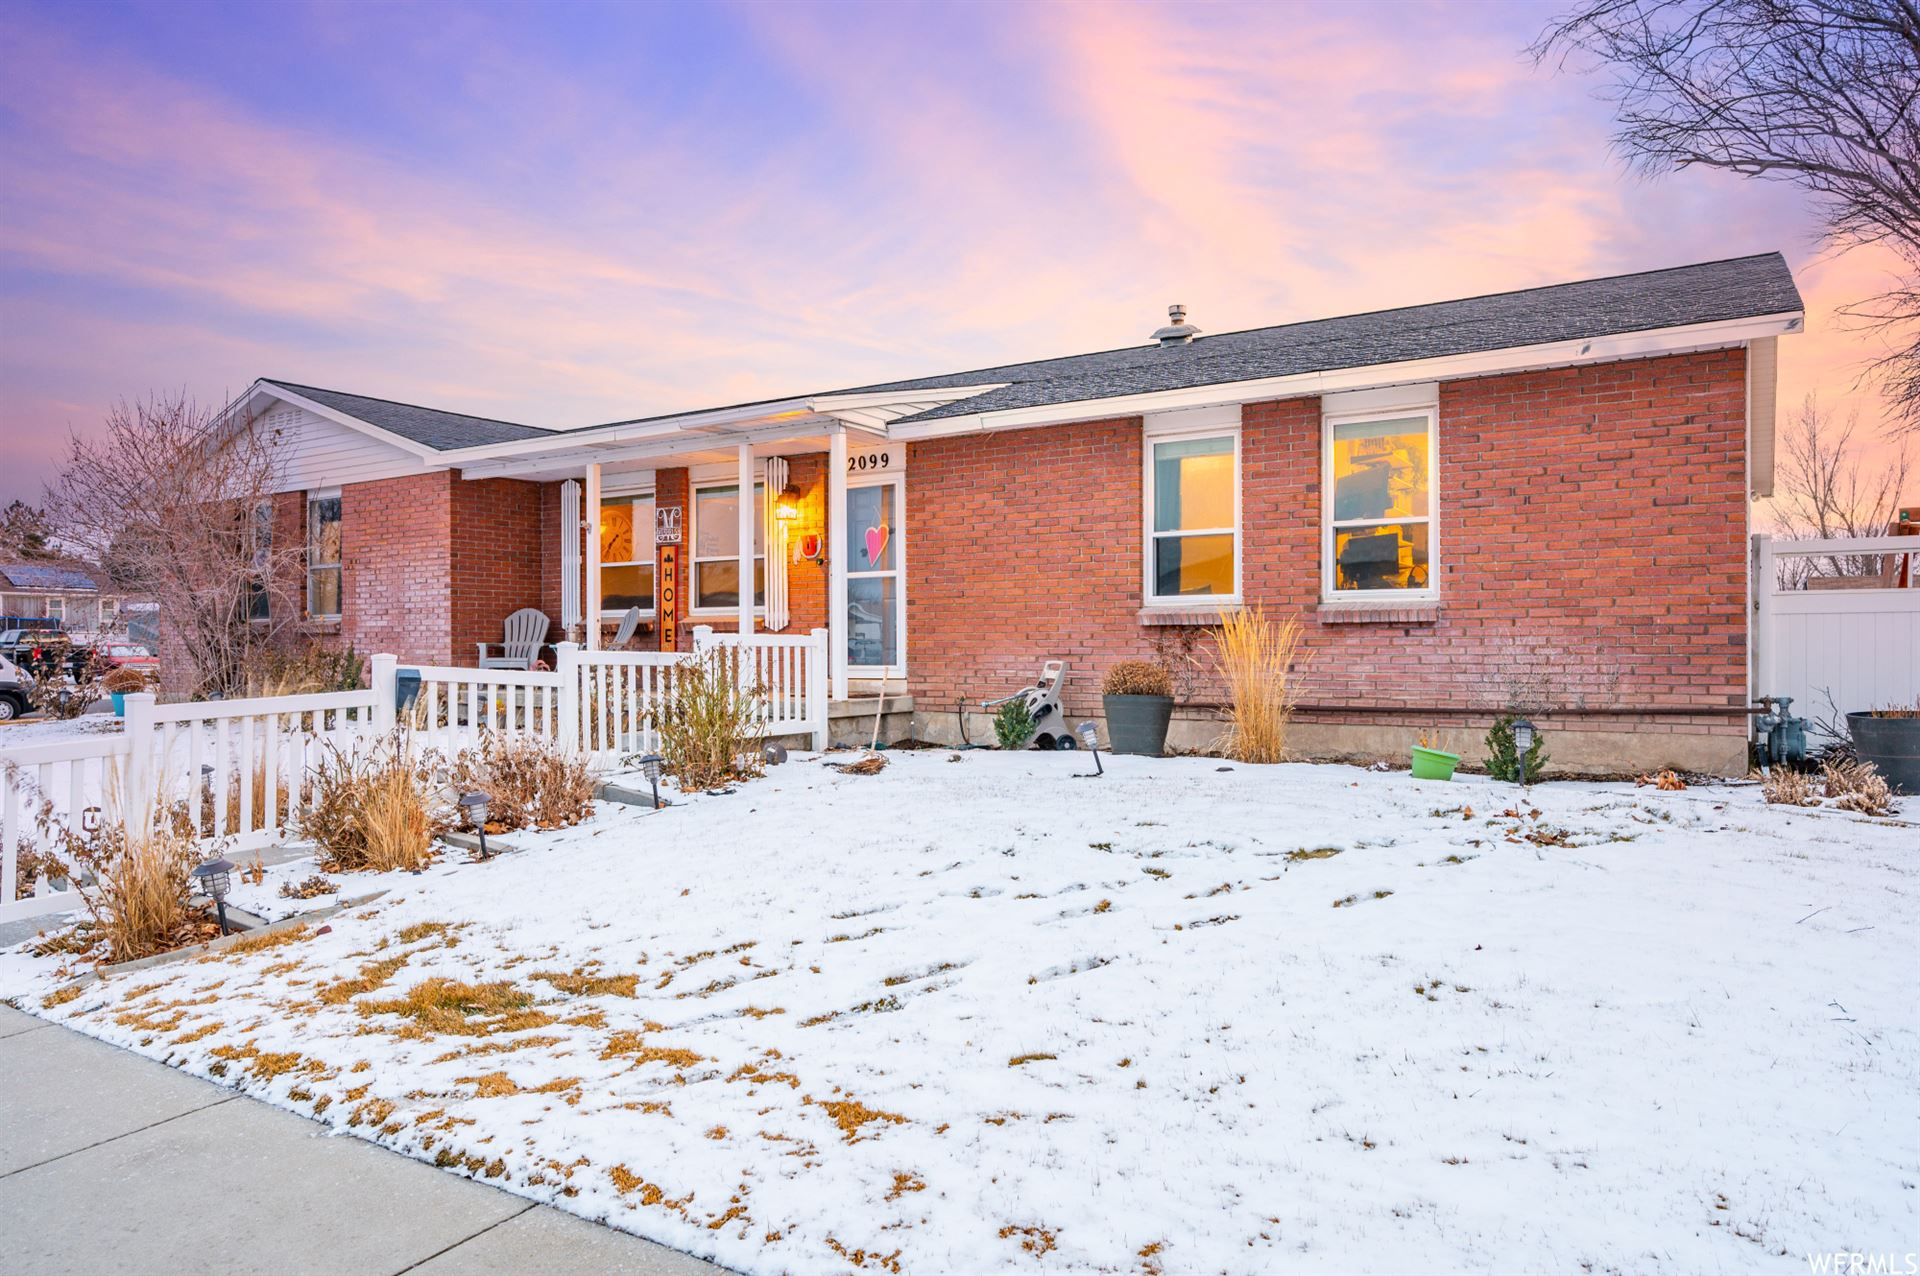 Photo of 2099 W CARRIAGE S AVE, Riverton, UT 84065 (MLS # 1722078)